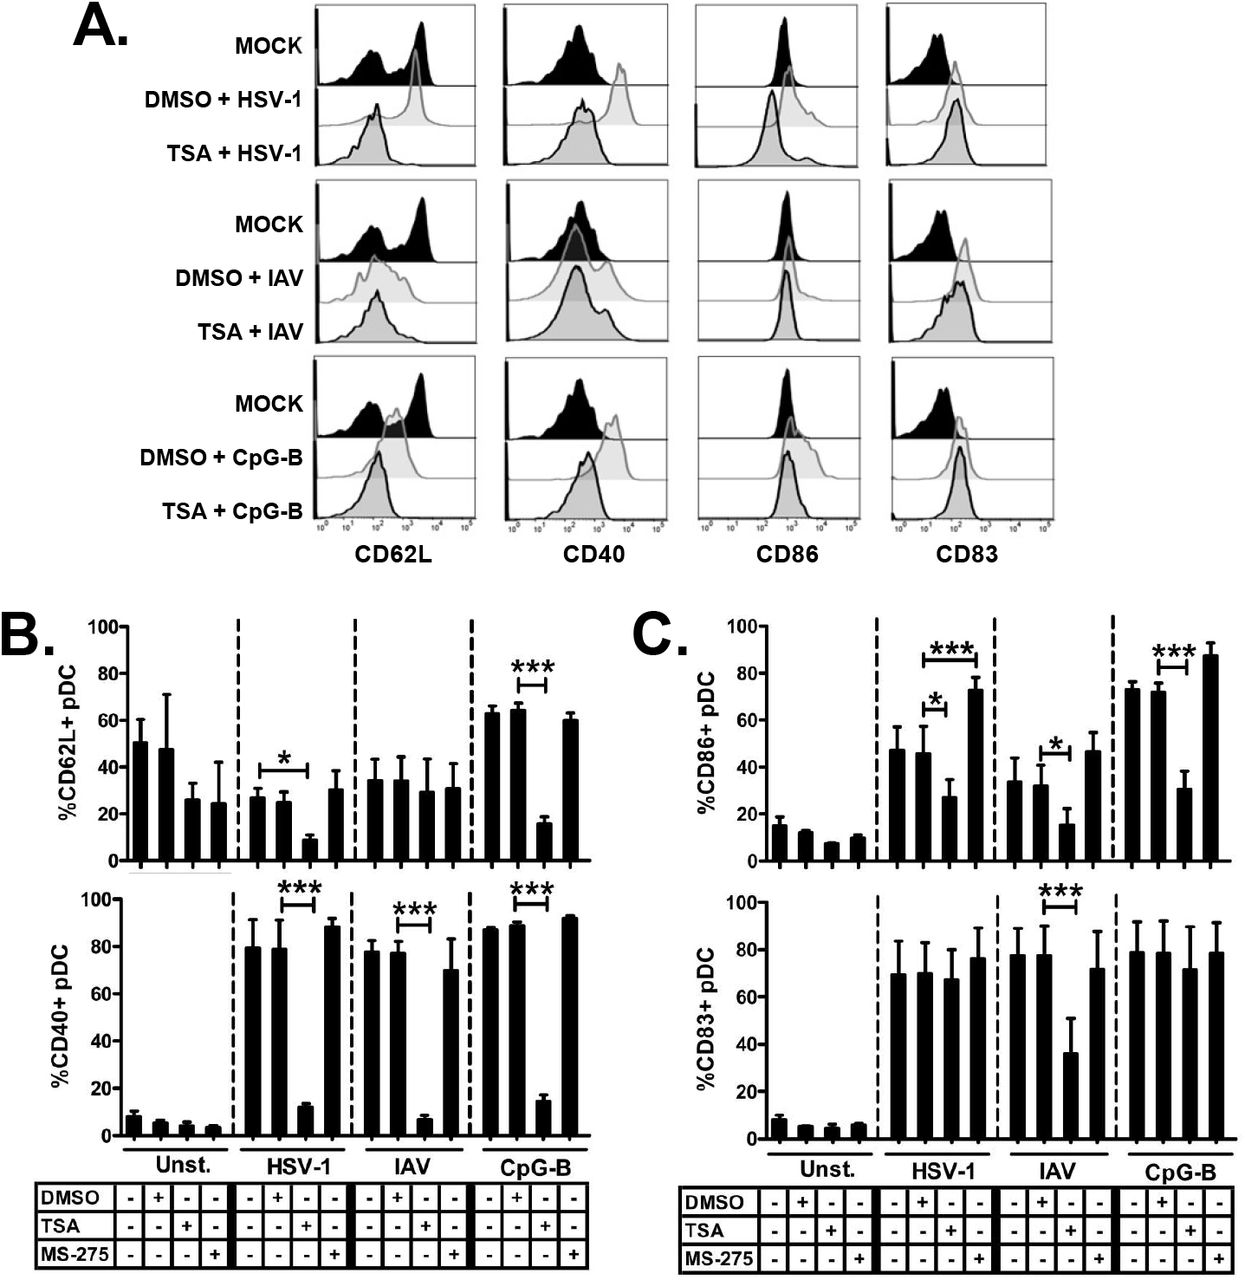 TSA and MS-275 inhibit the upregulation of pDC maturation markers upon TLR7/9 stimulation, and increase the shedding of the activation marker CD62L. PBMC were incubated with TSA (100 ng/ml), MS-275 (5 μM), or DMSO (1:530) for 1 hour and then stimulated with HSV-1 (MOI of 1), IAV (MOI of 2), or CpG-B (5 μg/ml) for 8 hours. Representative data derived from events first gated on PBMC, then pDC were identified by a BDCA-2 + /CD123 high gate. From this gate, histograms were derived and gates applied based on the unstimulated control in DMSO (Mock) (A) . Surface expression of CD62L (B, top) , CD40 (B, bottom) , CD86 (C, top), CD82 (C, bottom) were measured by flow cytometry and reported as percentage. (N = 4, 4 independent experiments with different donors; Data are expressed as mean ± SEM; Data were analyzed with 1-way ANOVA and Bonferroni's post test; *p